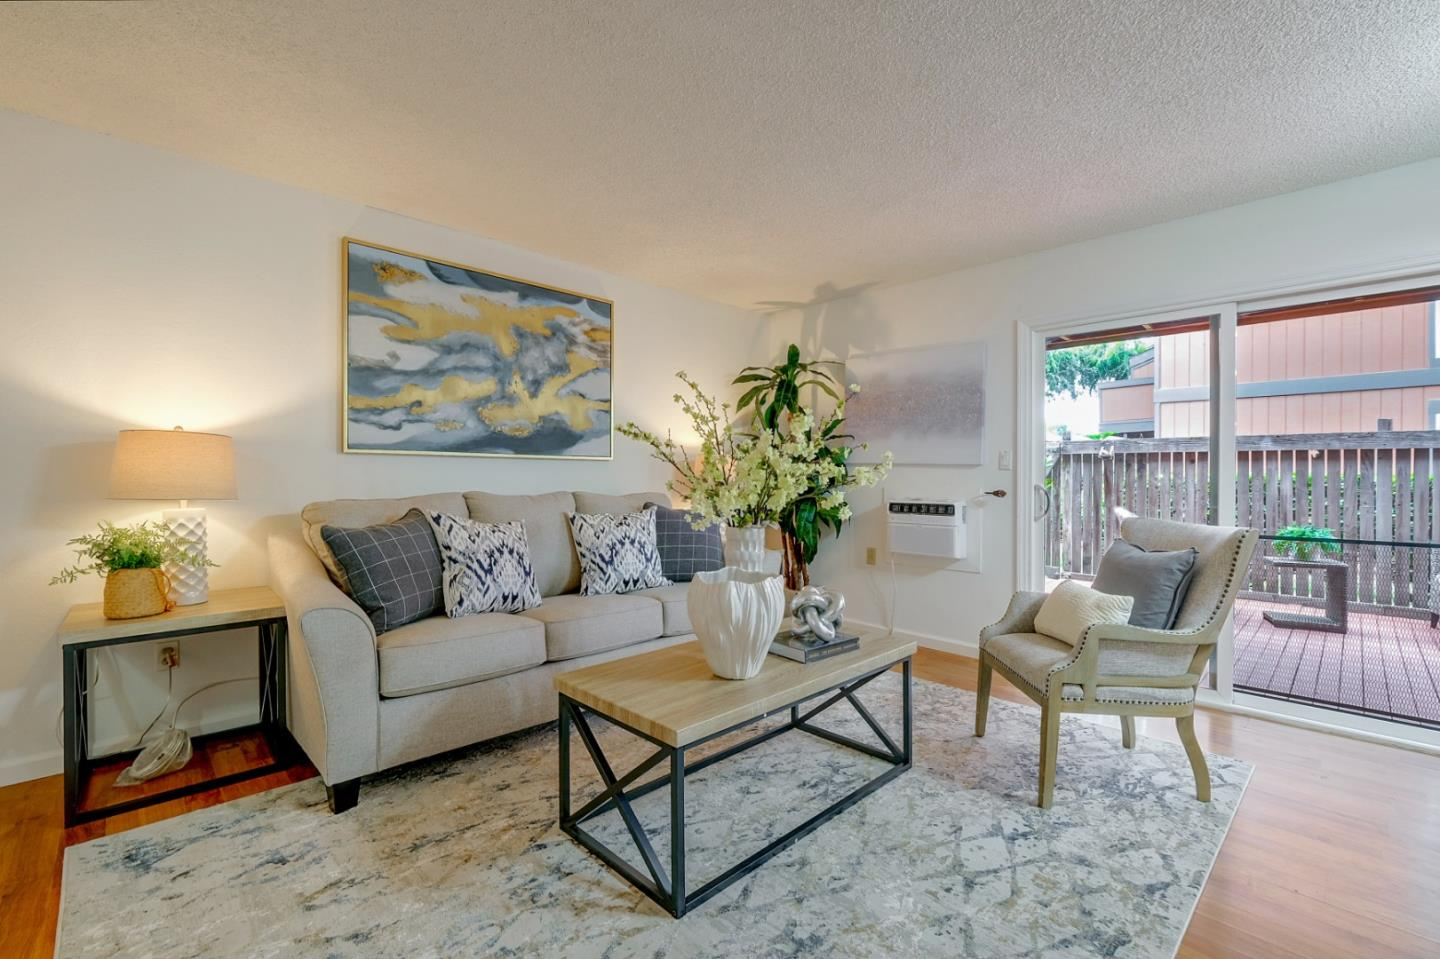 This ground floor condo unit in Central Fremont features both modern upgrades and a privately fenced patio in desirable Fremont Oaks Community. The living room is cozy and open with large sliding doors and leads off to the charming patio. The outdoor space is the perfect place to relax and entertain guests. Convenient in unit laundry, assigned covered carport and electric baseboard heating and brand new window air conditioning. Granite kitchen counter and breakfast bar, ample cabinets for storage. The outdoor space is the perfect place to relax and entertain guests. This complex boasts a Clubhouse, swimming pool, basketball court, and walkways for your strolls.  HOA includes trash and water/sewer, lawn care, insurance, pest control and exterior maintenance/repairs. Easy access to HWY 880, 238, 680, 84. Located close to BART, Lake Elizabeth, grocery stores, library, hospitals and restaurants.